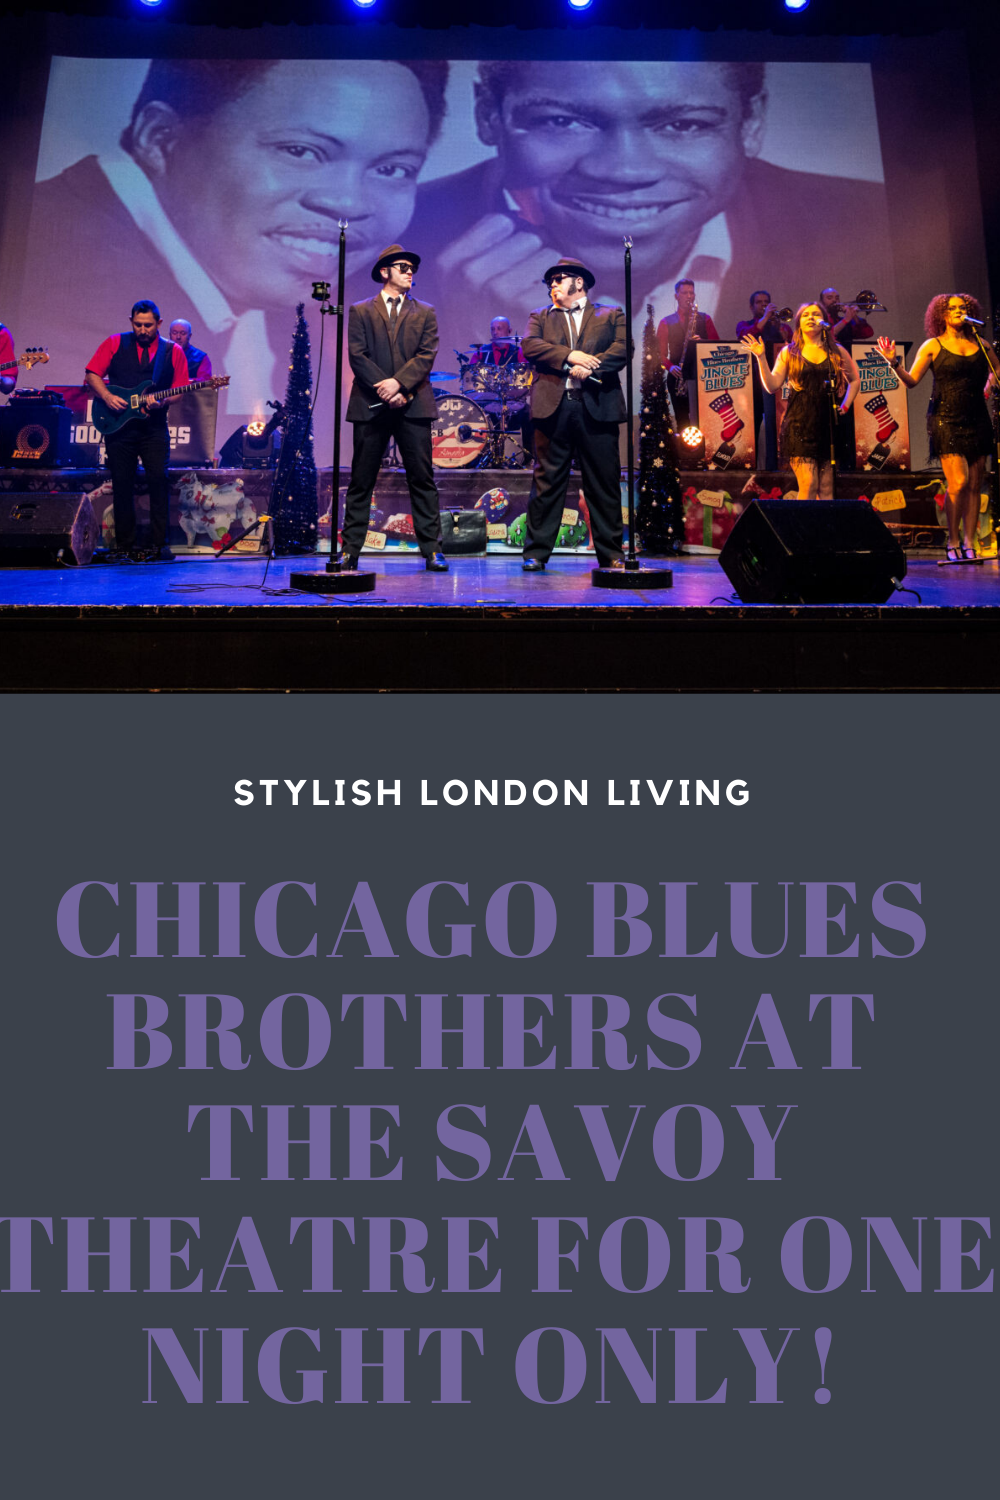 Chicago Blues Brothers at The Savoy Theatre for one night